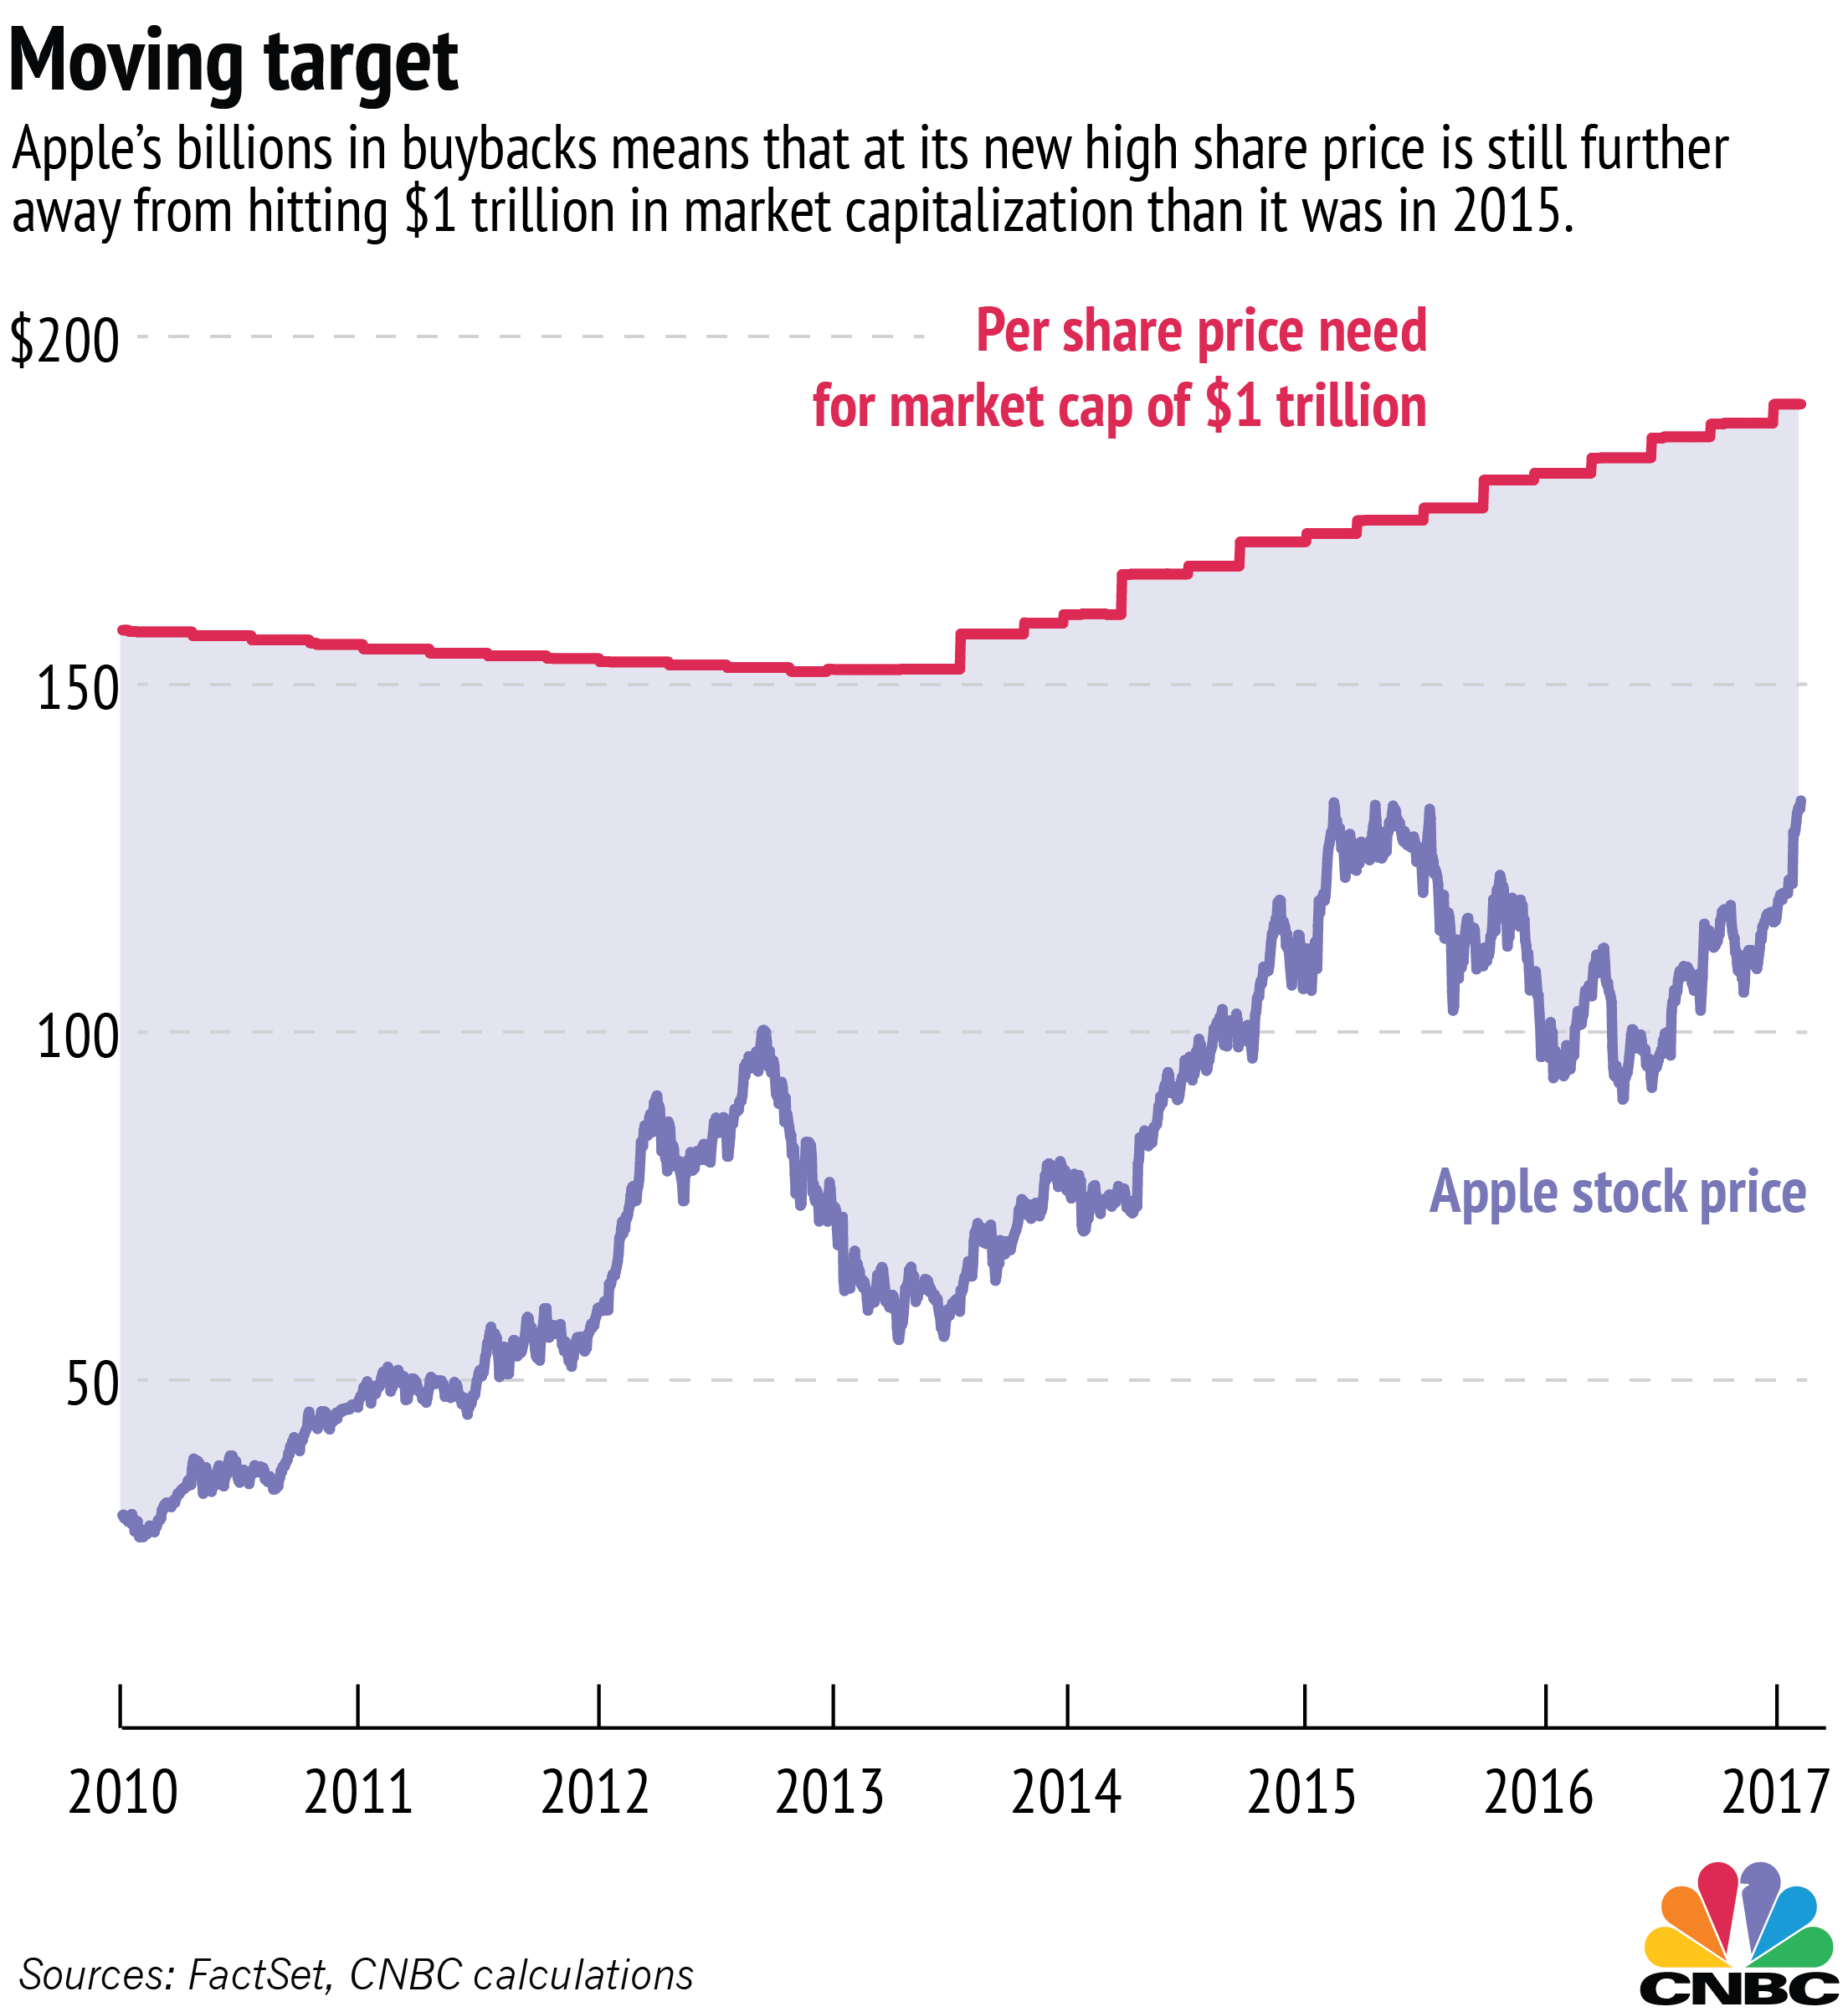 Apple Inc. (NASDAQ:AAPL) at $133.29: How much growth it can achieve